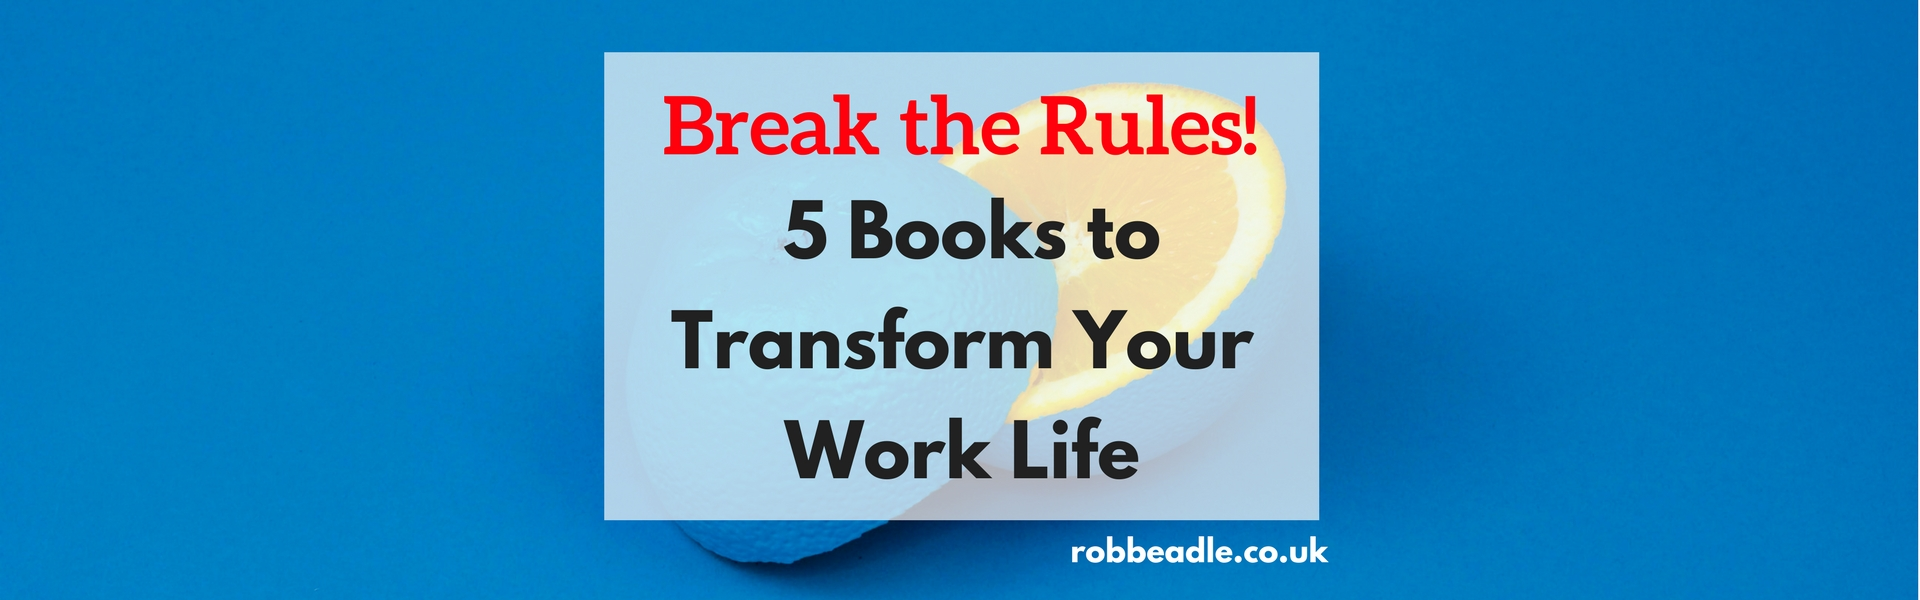 Break the Rules! 5 Books to Transform Your Work Life